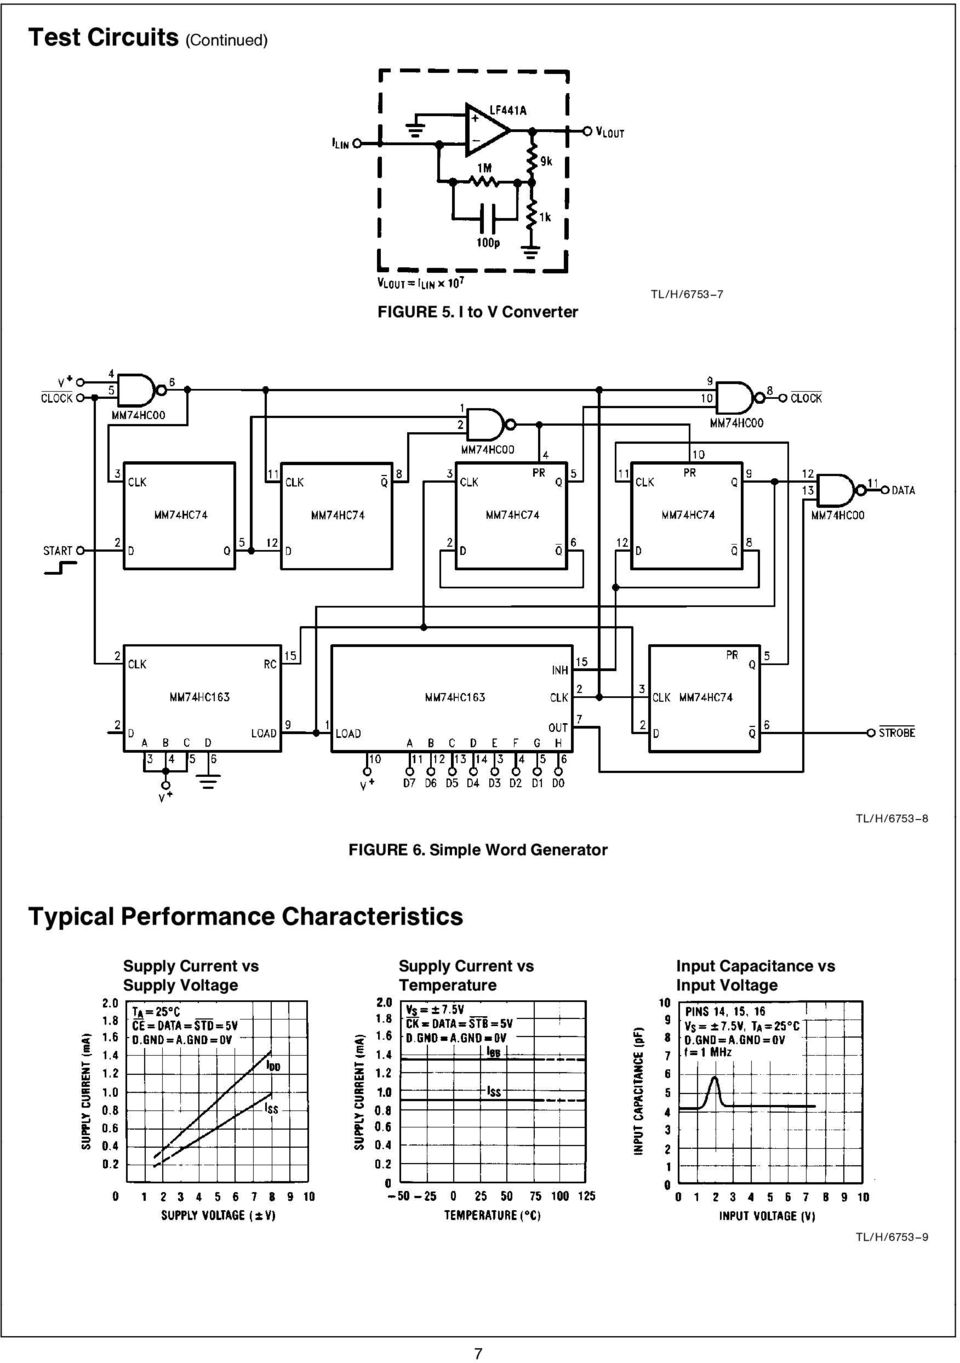 Lmc835 Digital Controlled Graphic Equalizer Pdf Band Schematic Design Characteristics Supply Current Vs Voltage